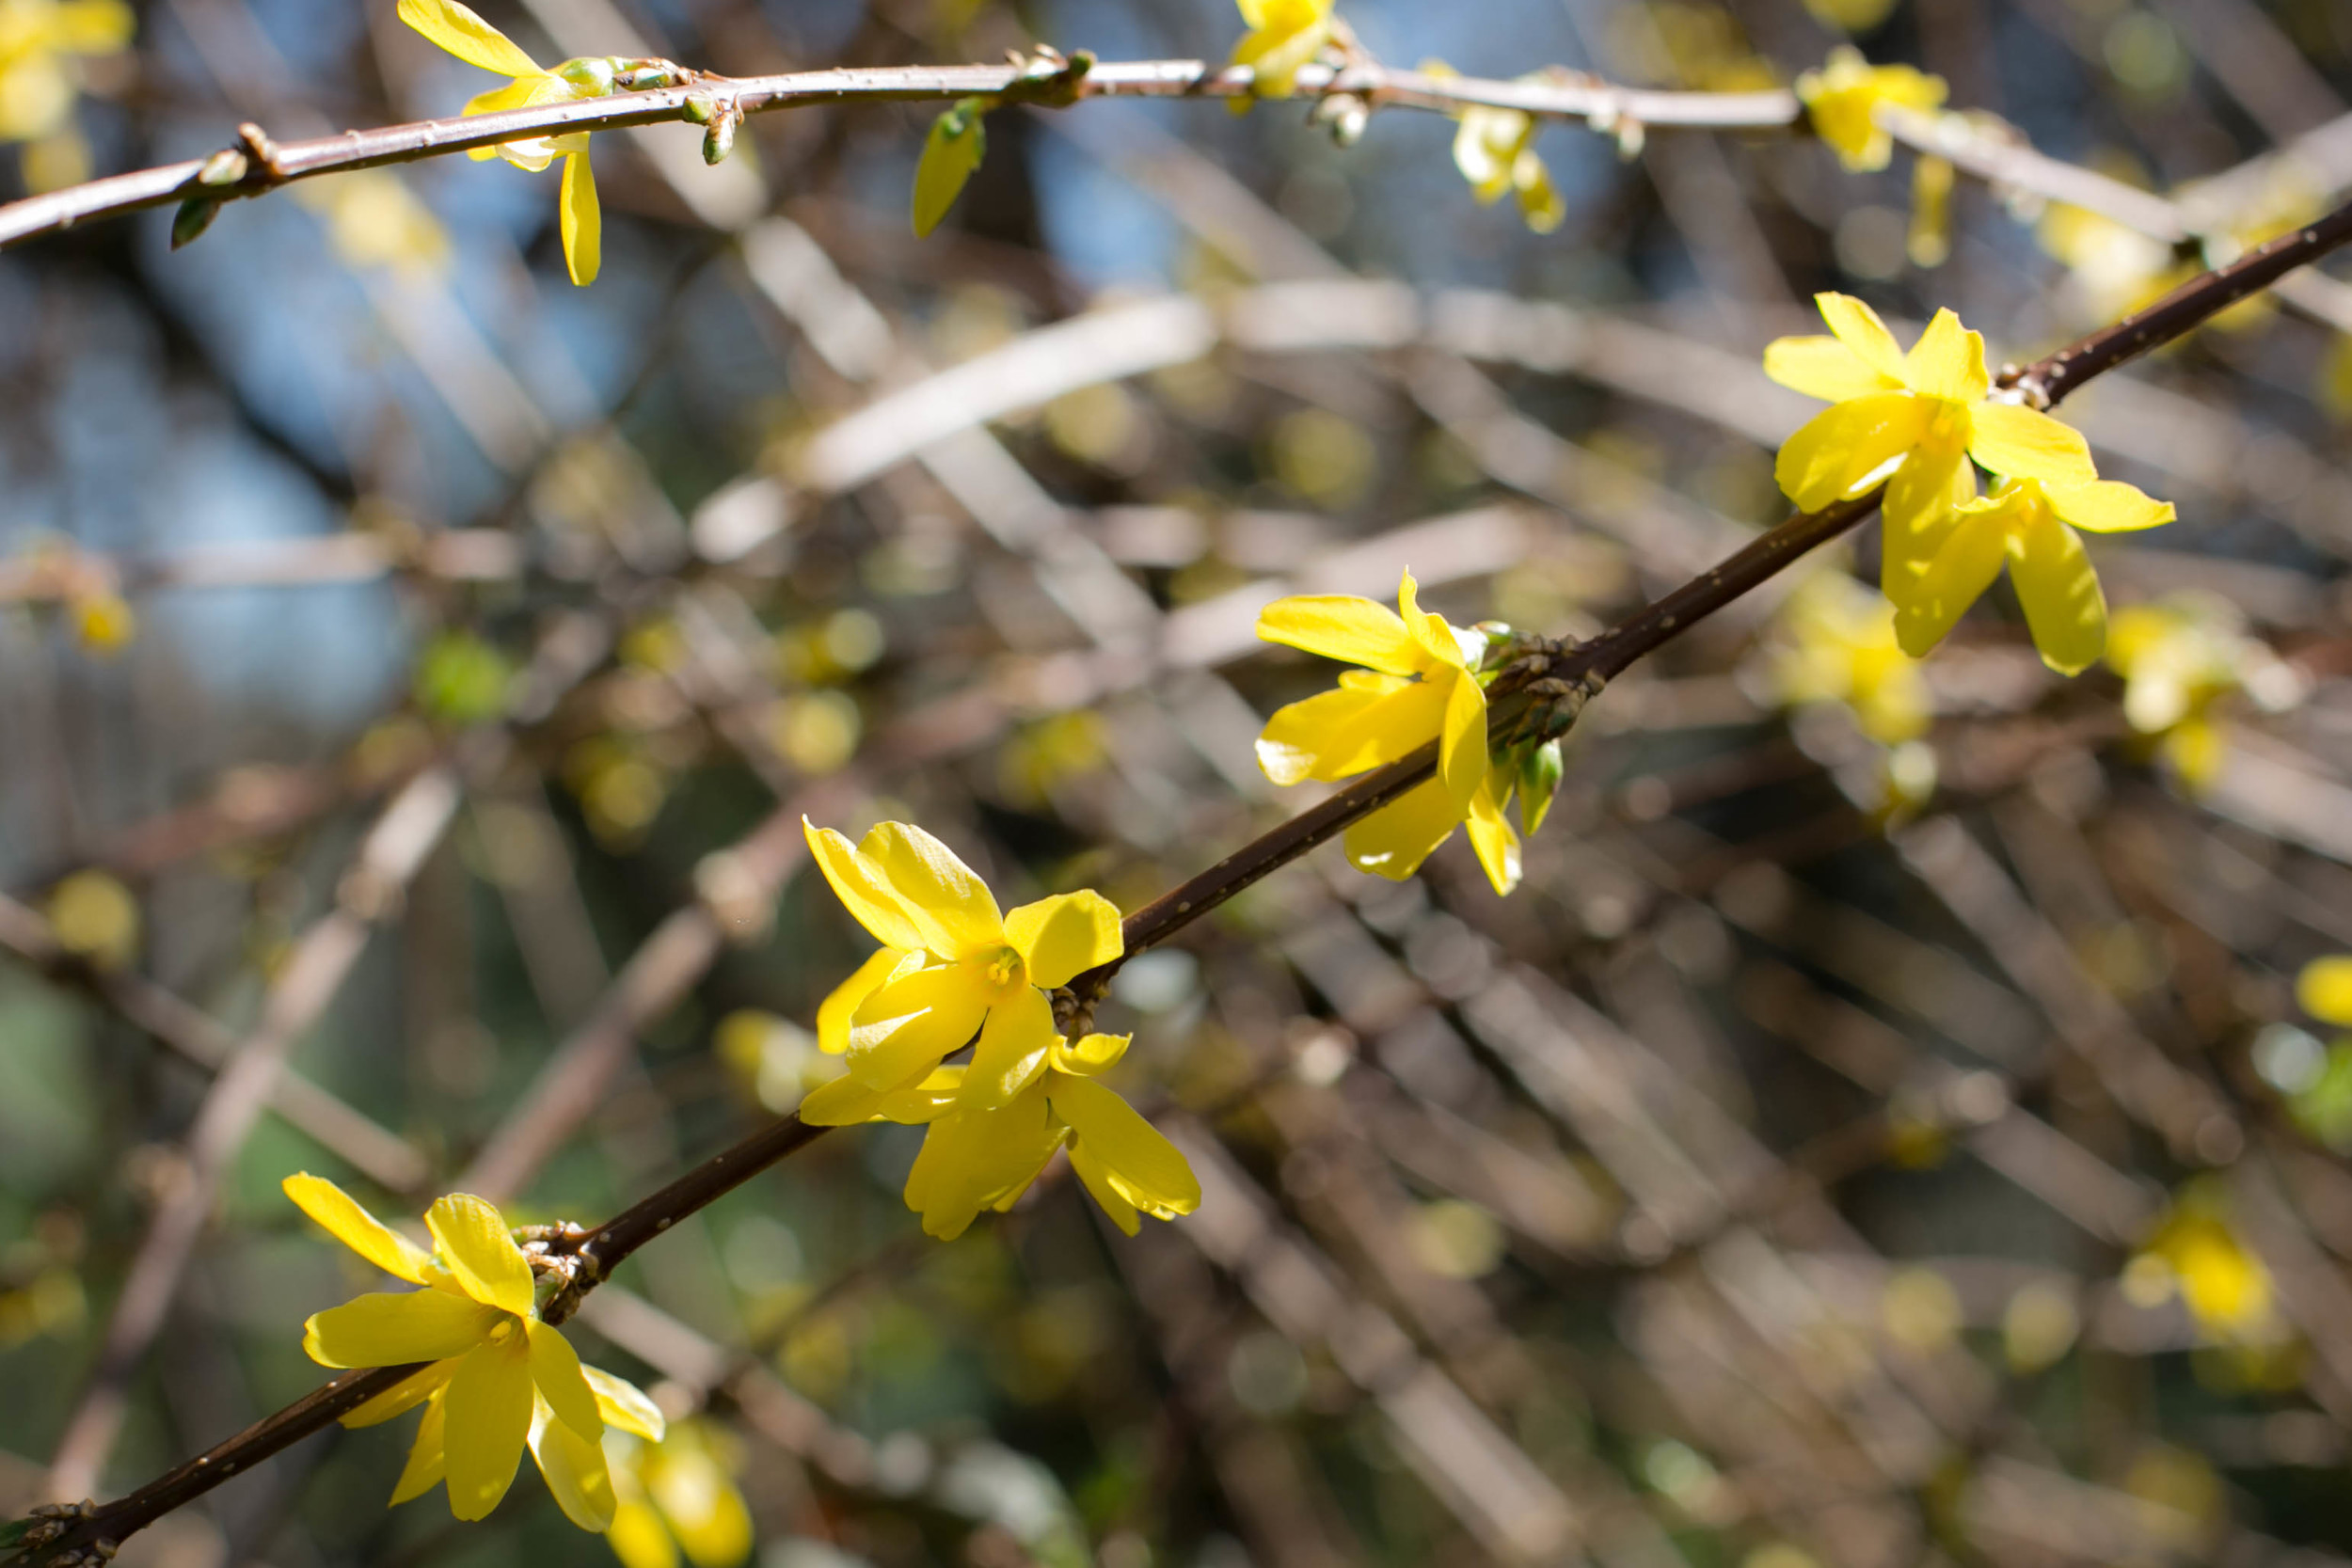 Forsythia adds a dramatic flair even before Spring begins.